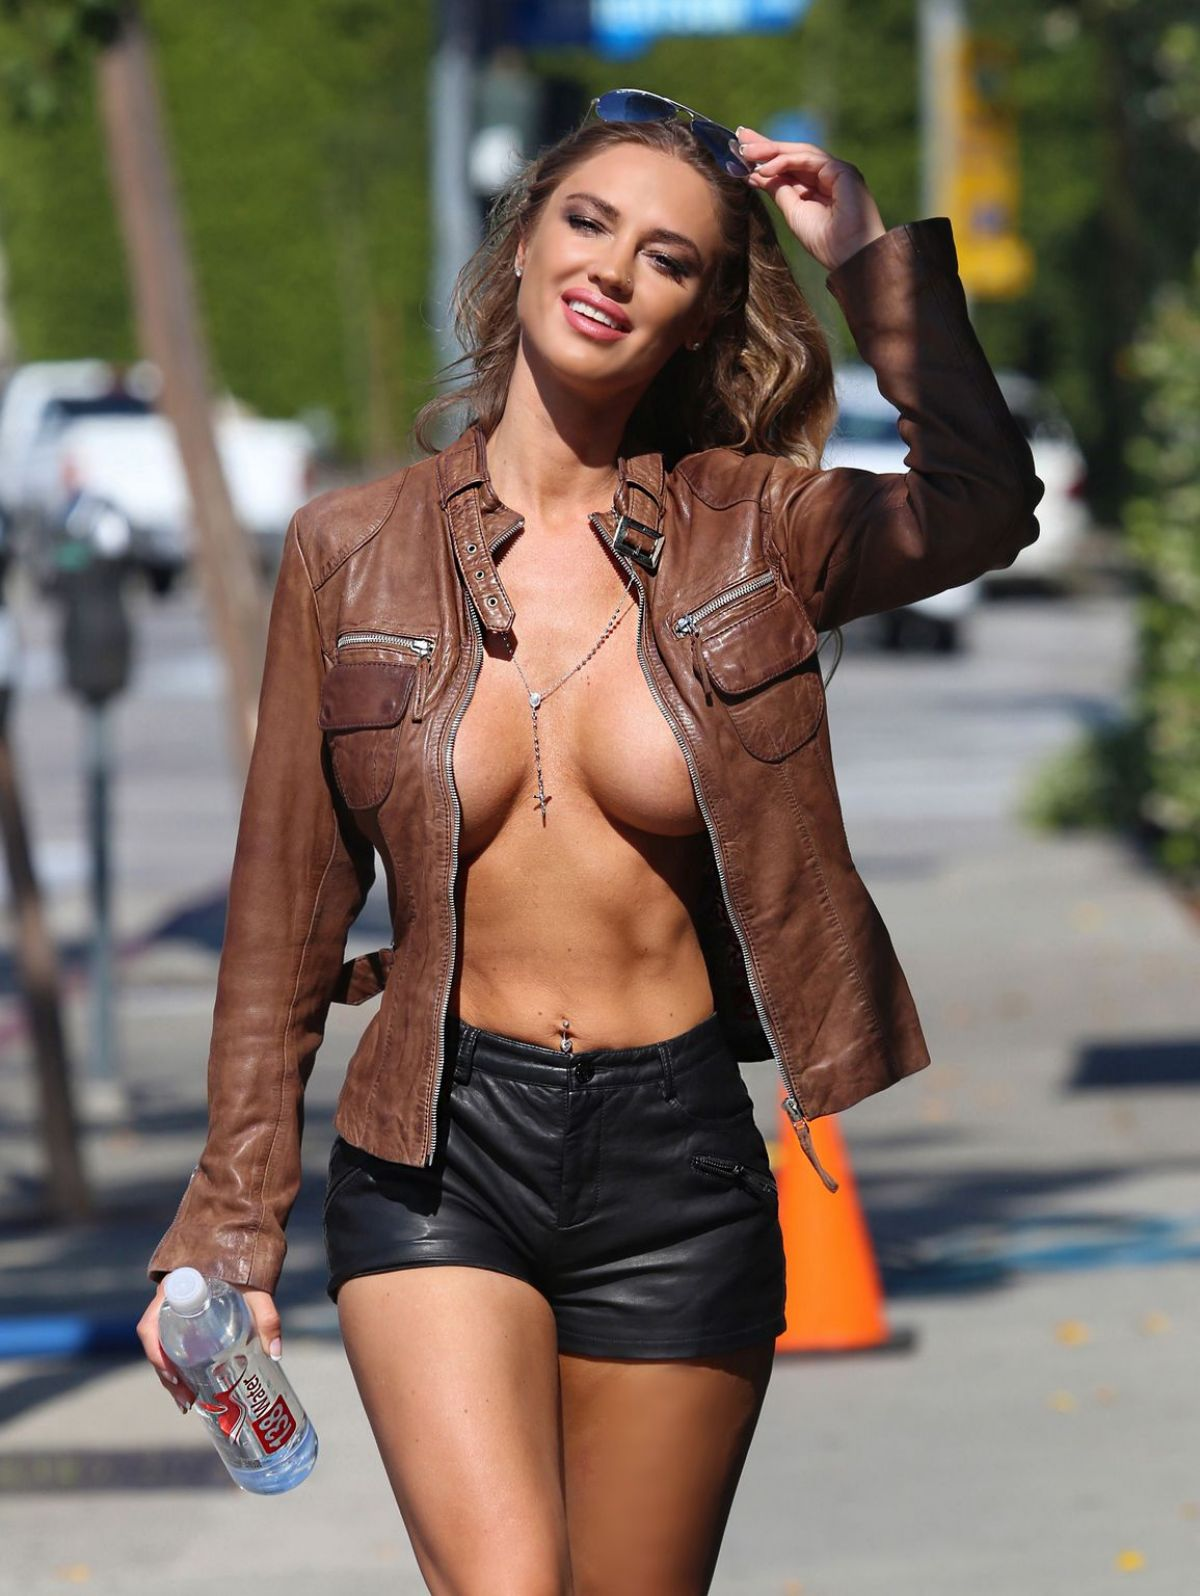 jeans Girls jacket leather in and topless